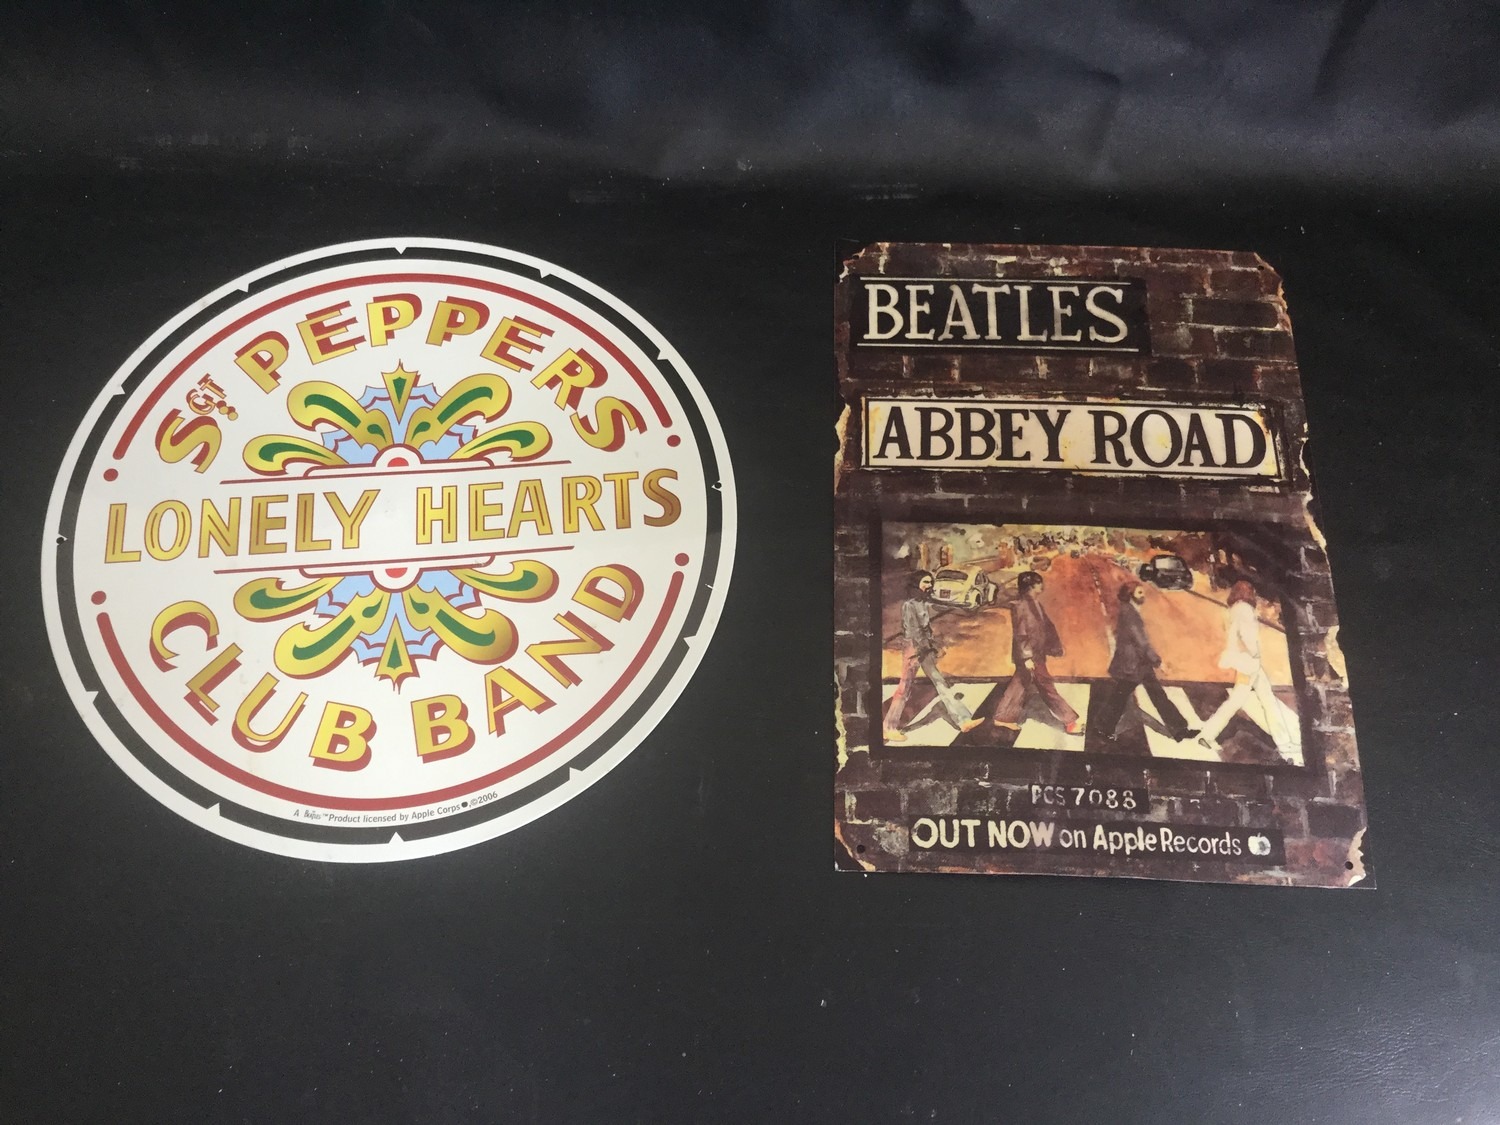 2 X METAL BEATLE PLAQUES. The first is advertising the Abbey Road album on Apple Records which